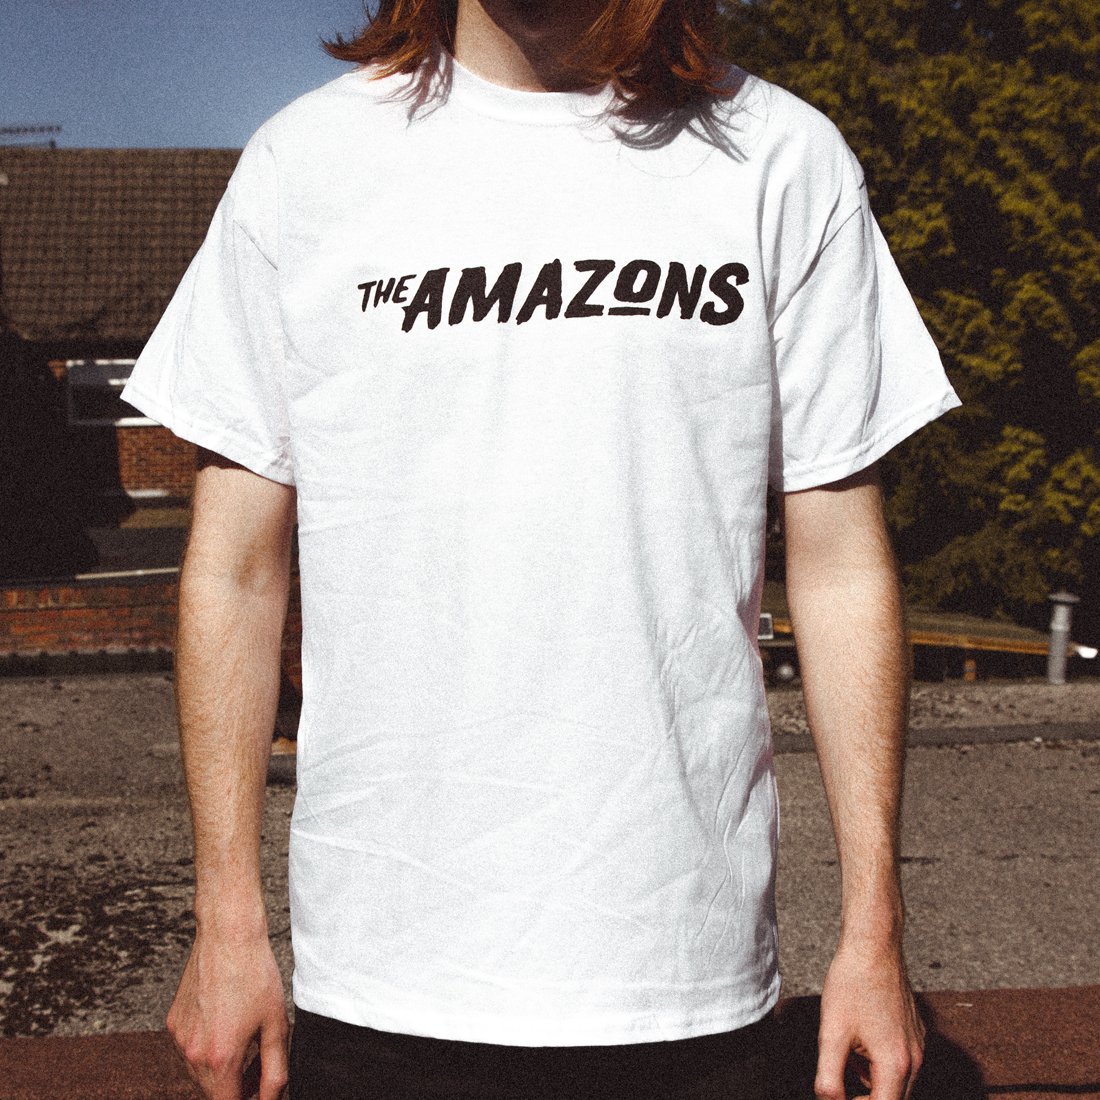 The Amazons: The Amazons White T-shirt